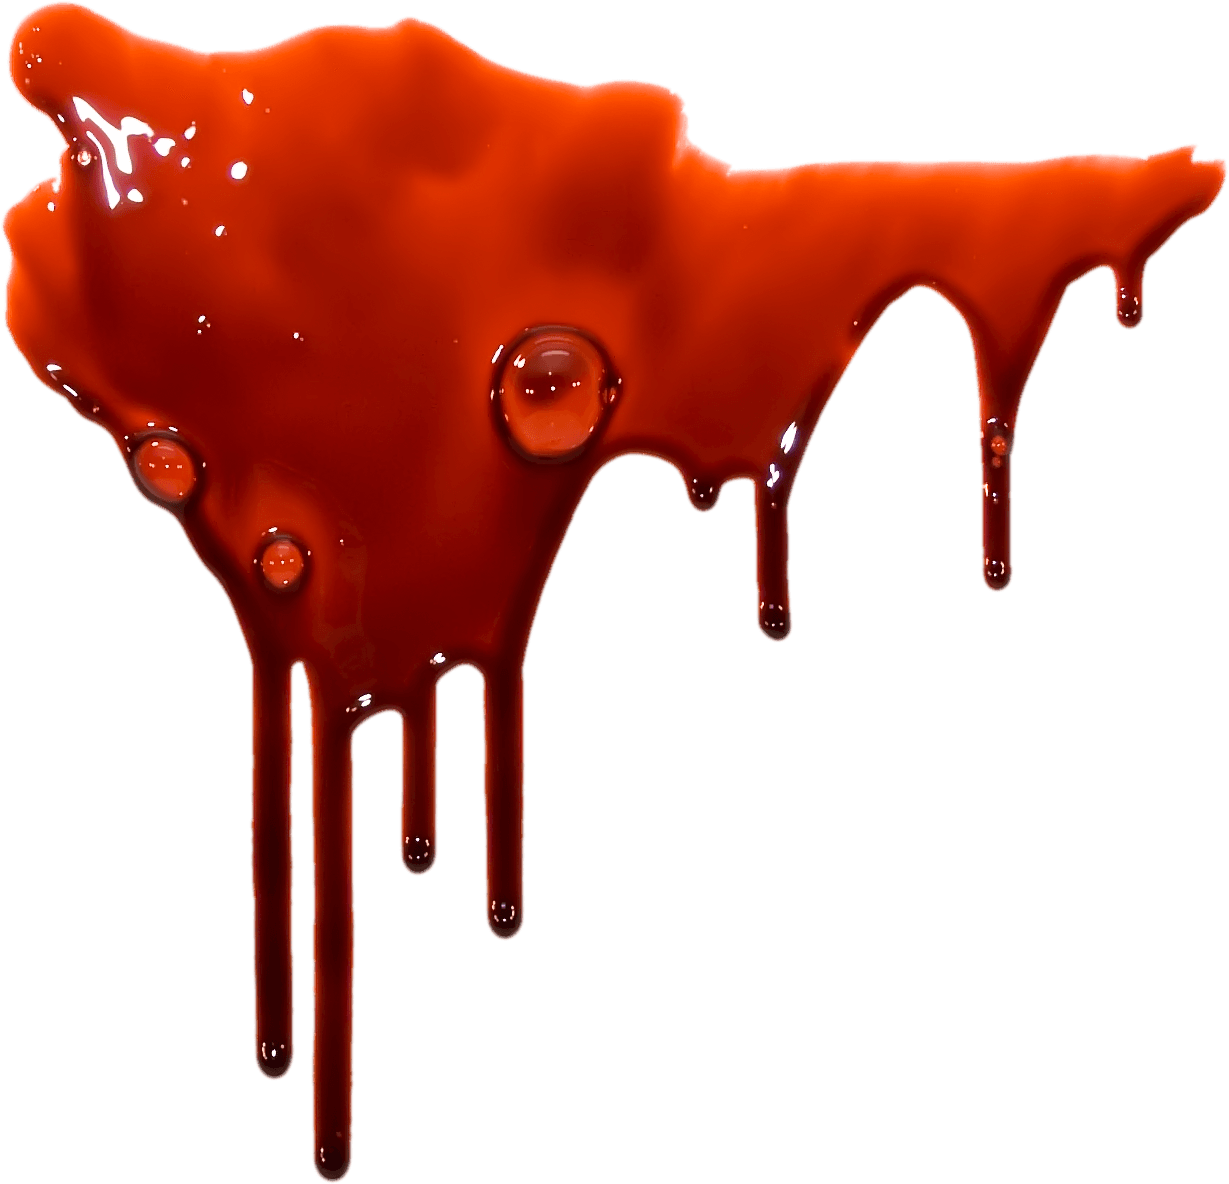 Blood png. Header transparent stickpng